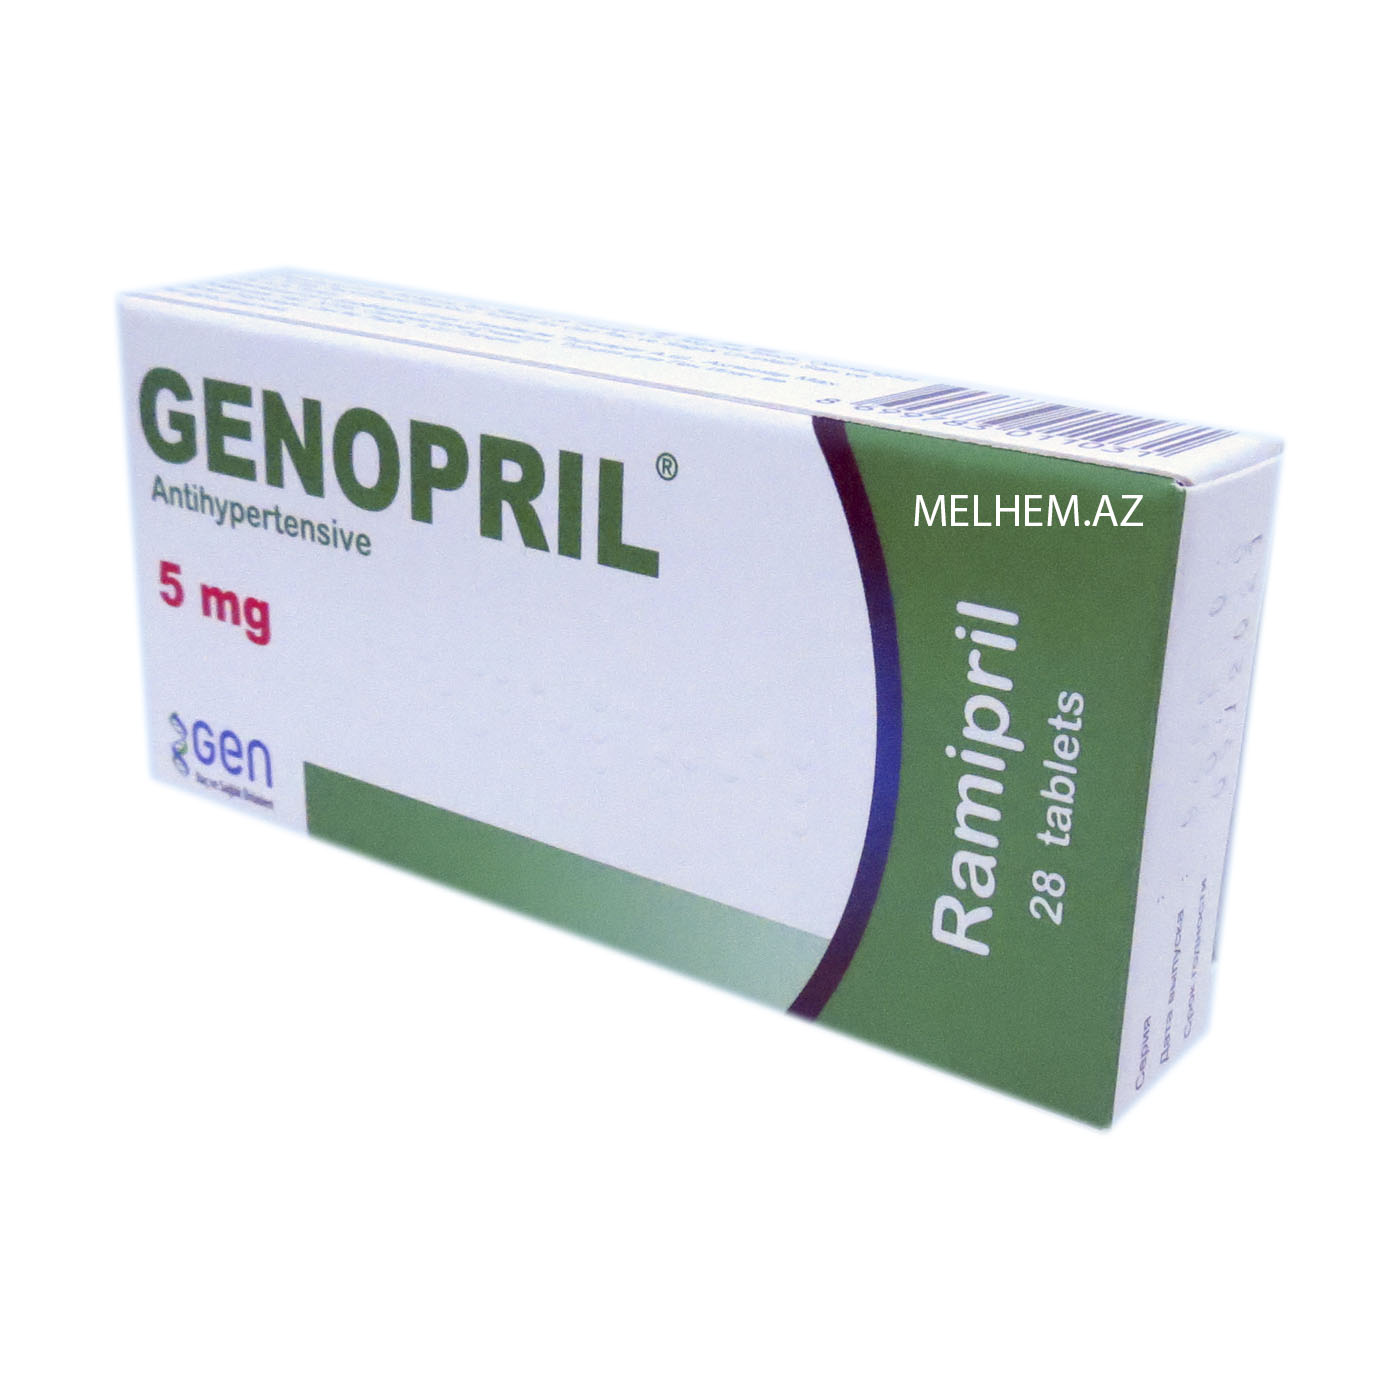 GENOPRIL 5 MG